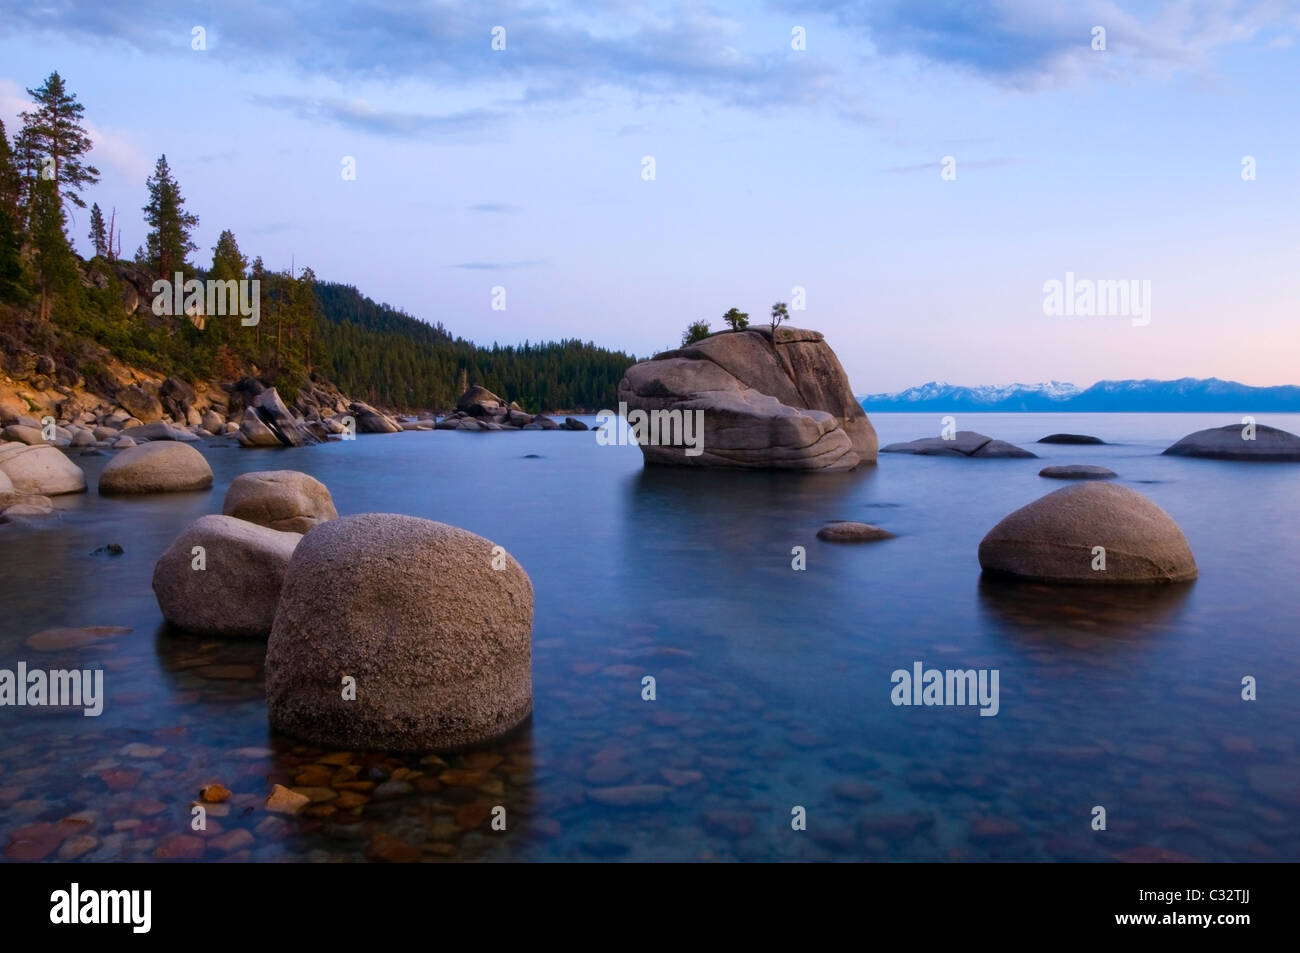 Evening light illuminates the granite boulders and calm waters of Lake Tahoe in the summer, NV. - Stock Image